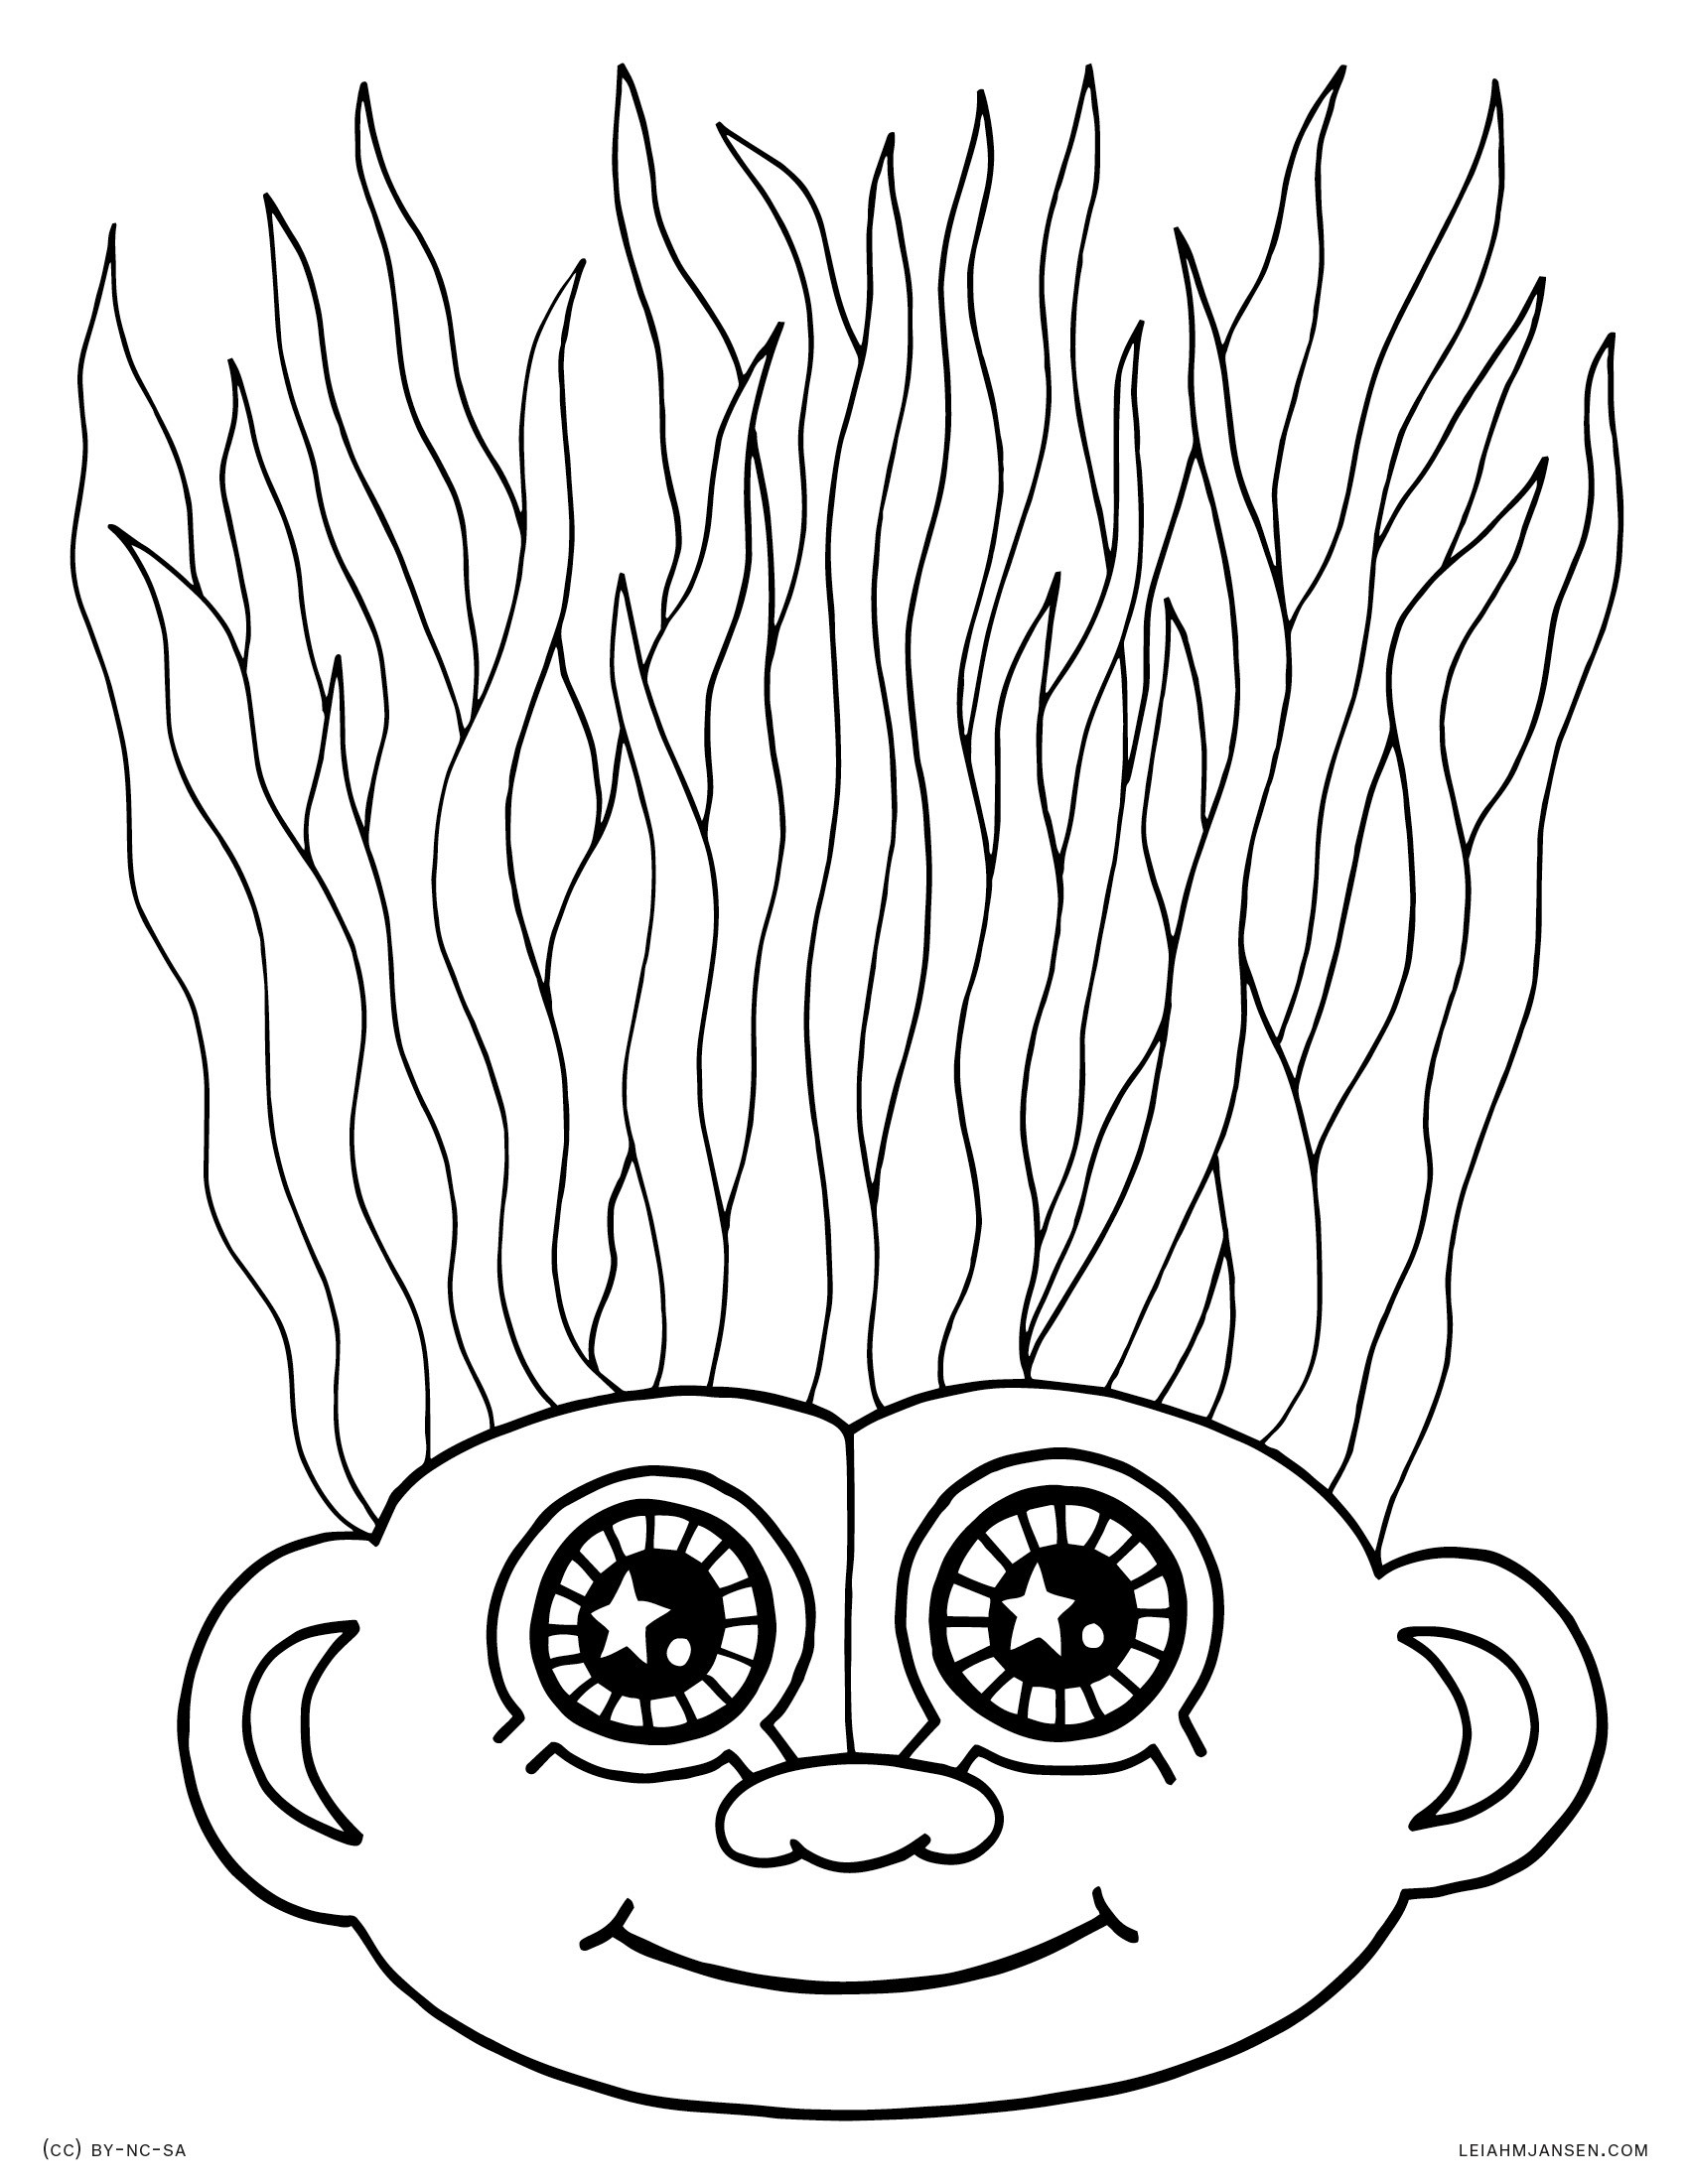 hair colouring pages 10 crazy hair adult coloring pages page 10 of 12 nerdy hair pages colouring